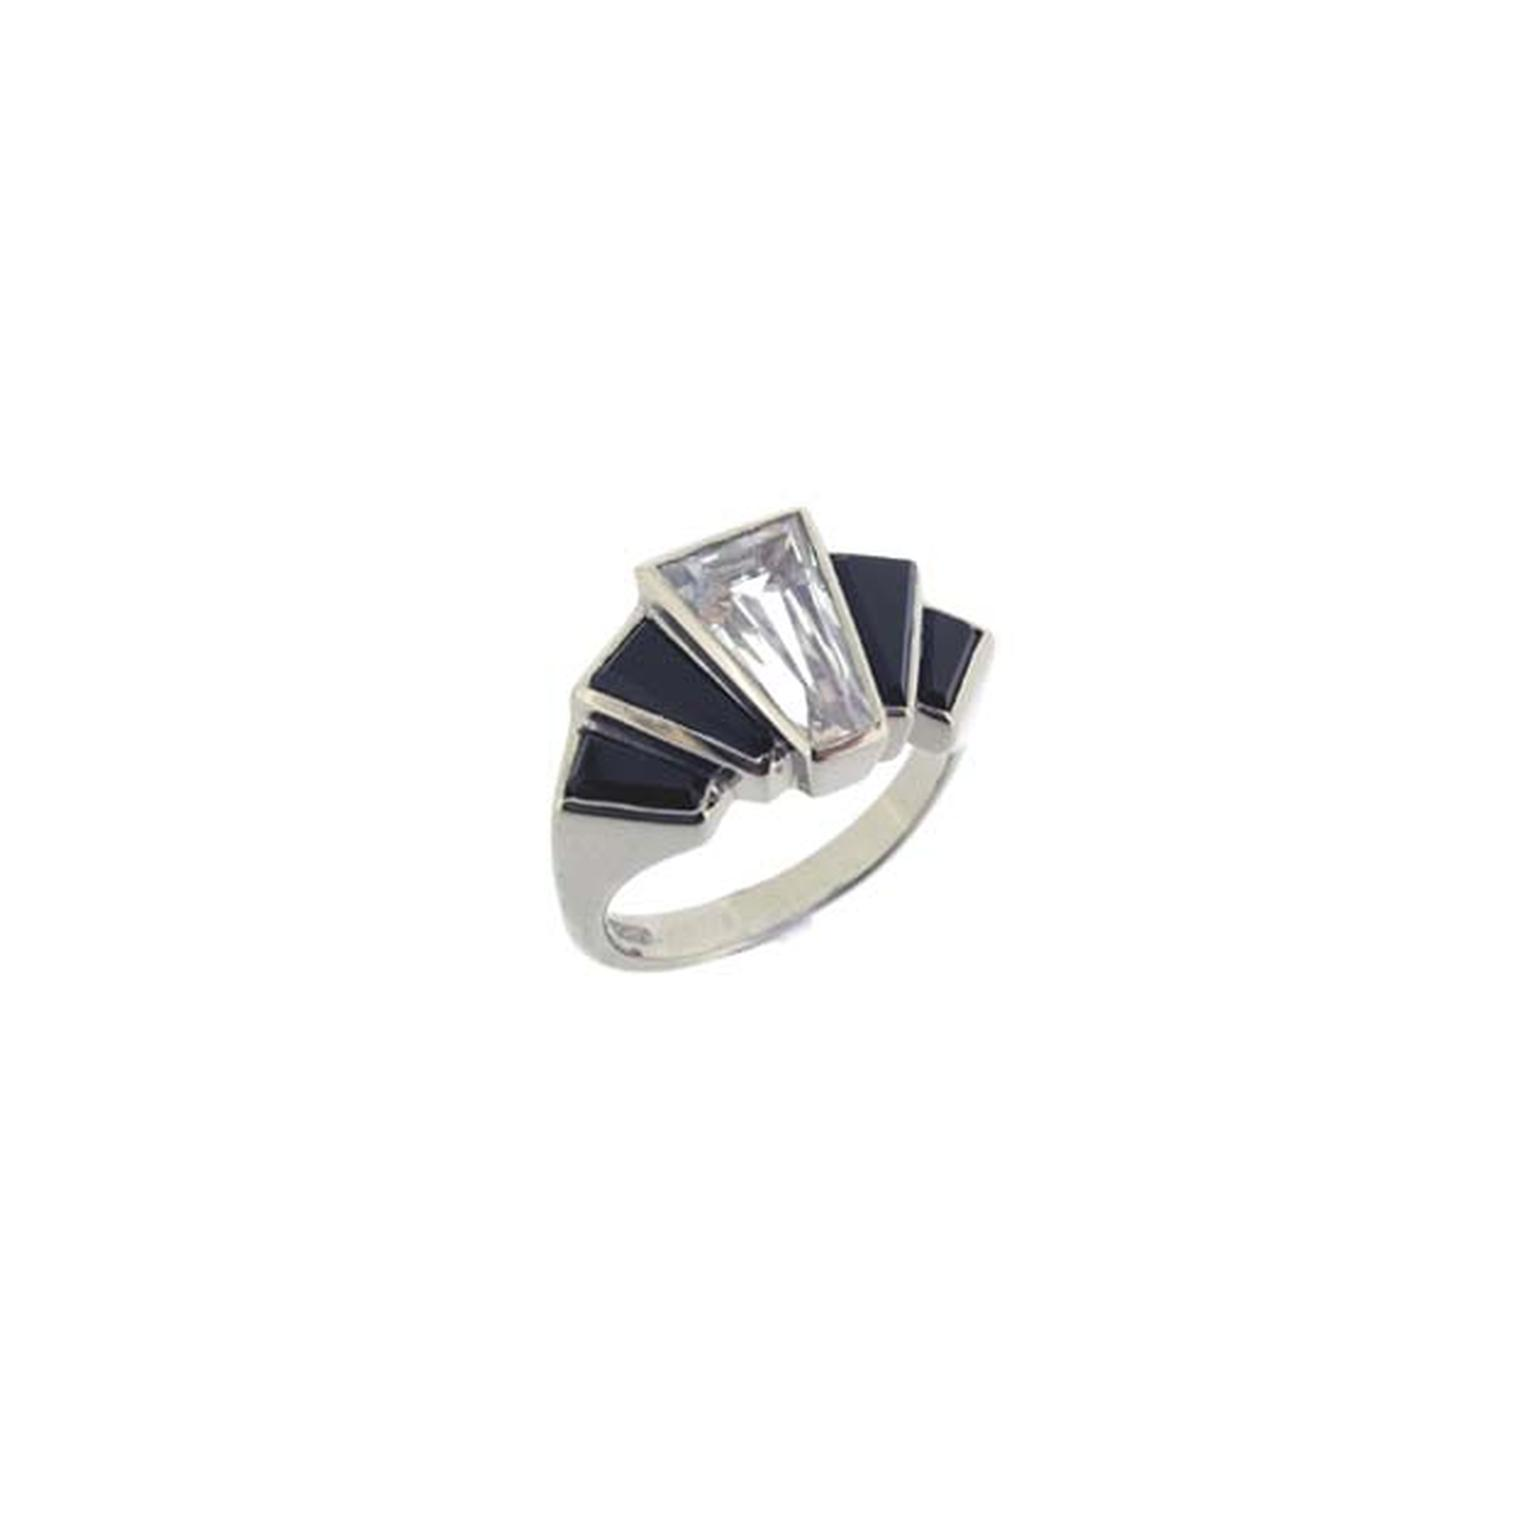 Brand-new Art Deco-style engagement ring from Baroque Jewellery in KR91